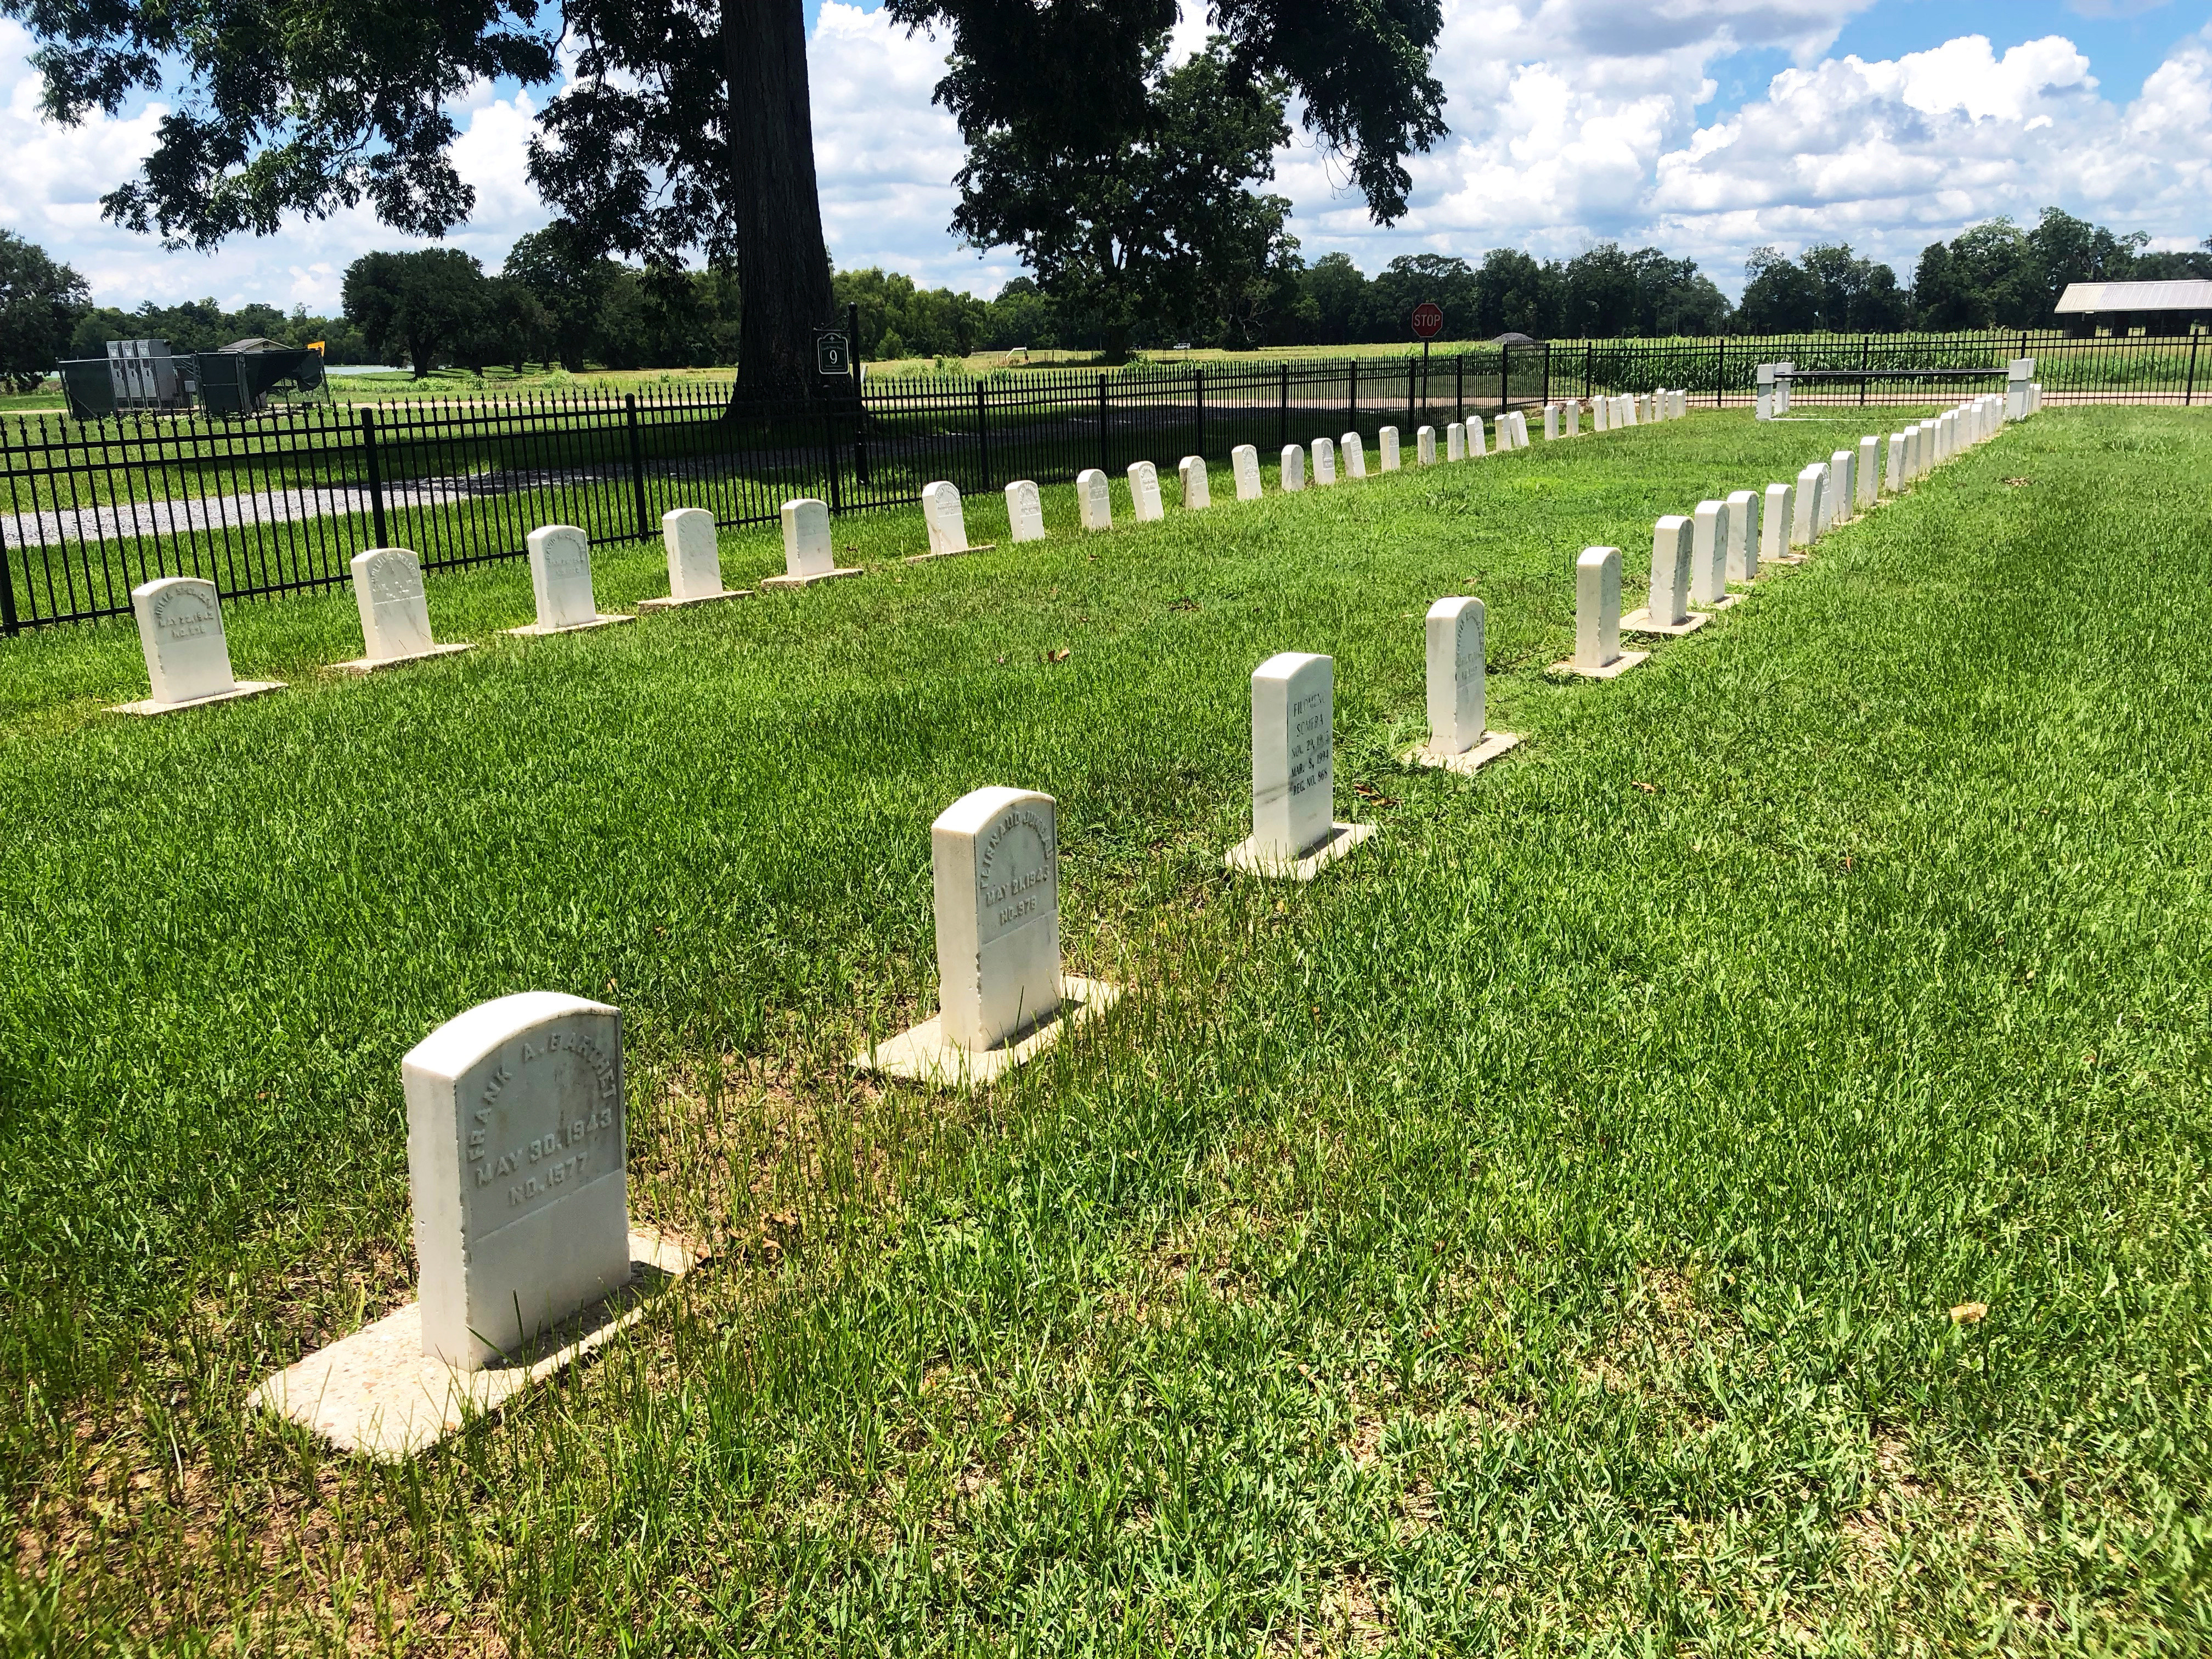 Markes for former leprosy patients line a graveyard in the former leprosy colony at what is now the Gillis W. Long National Guard Center in Carville, Louisiana, U.S., July 6, 2018. Picture taken July 6, 2018.   To match Special Report USA-MILITARY/LOUISIANA   REUTERS/Joshua Schneyer - RC1AF461A070